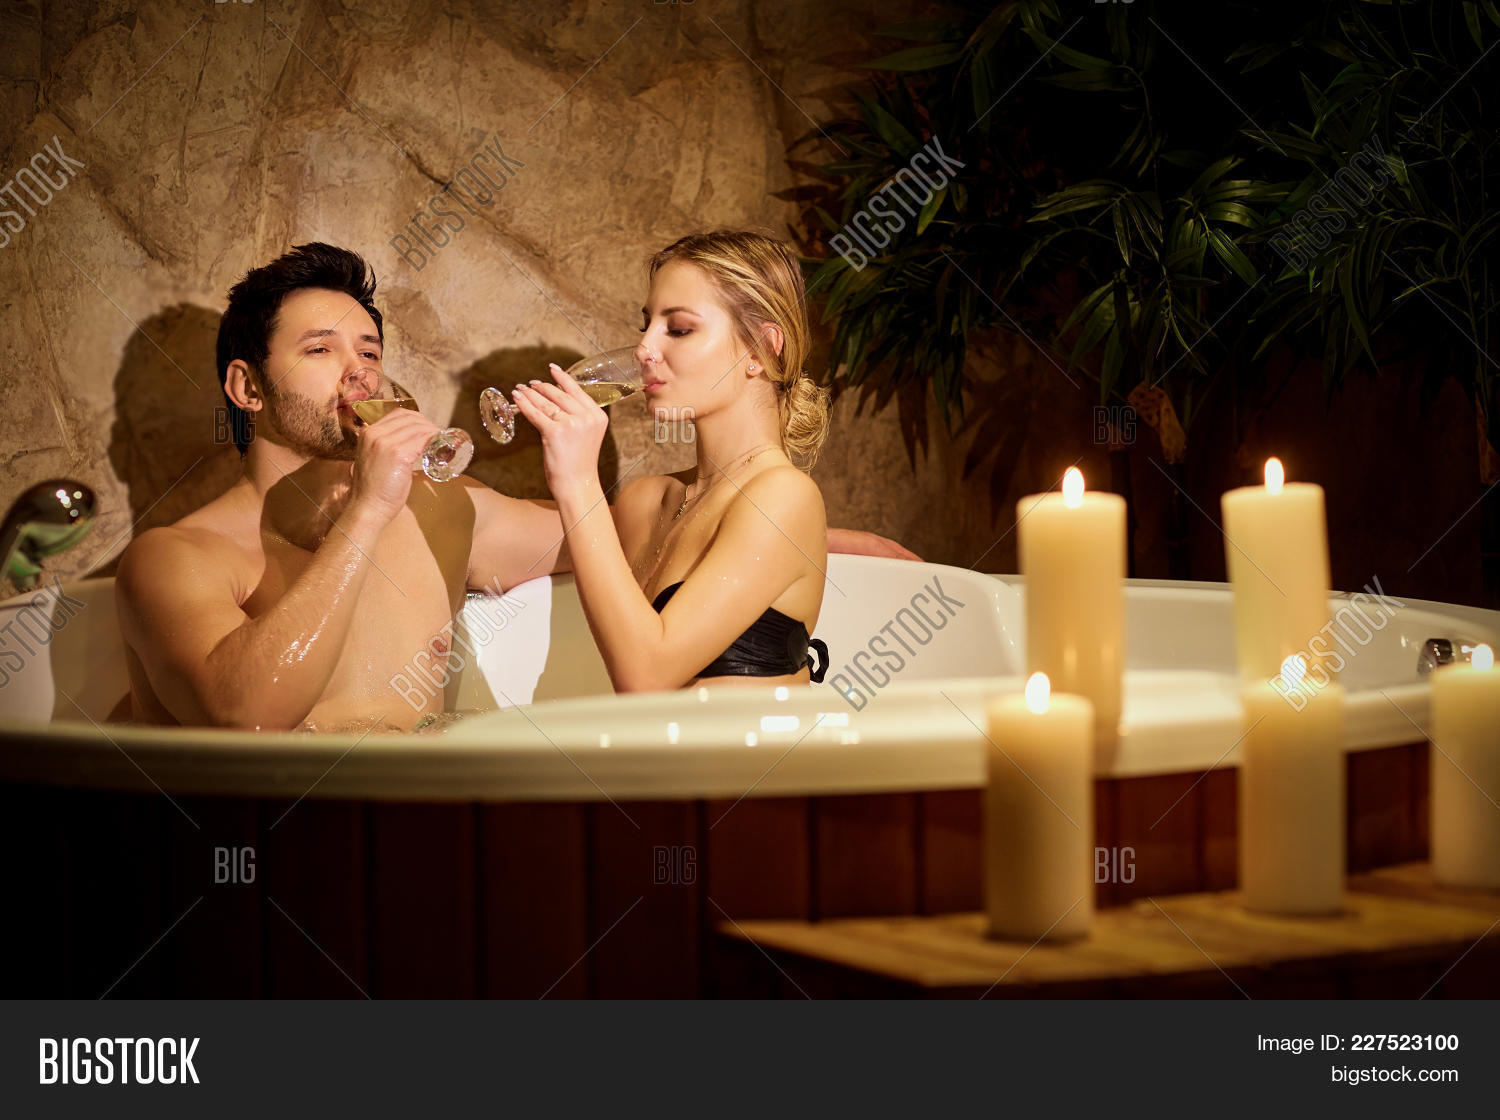 foto-naked-couples-making-love-in-a-hot-tub-warrior